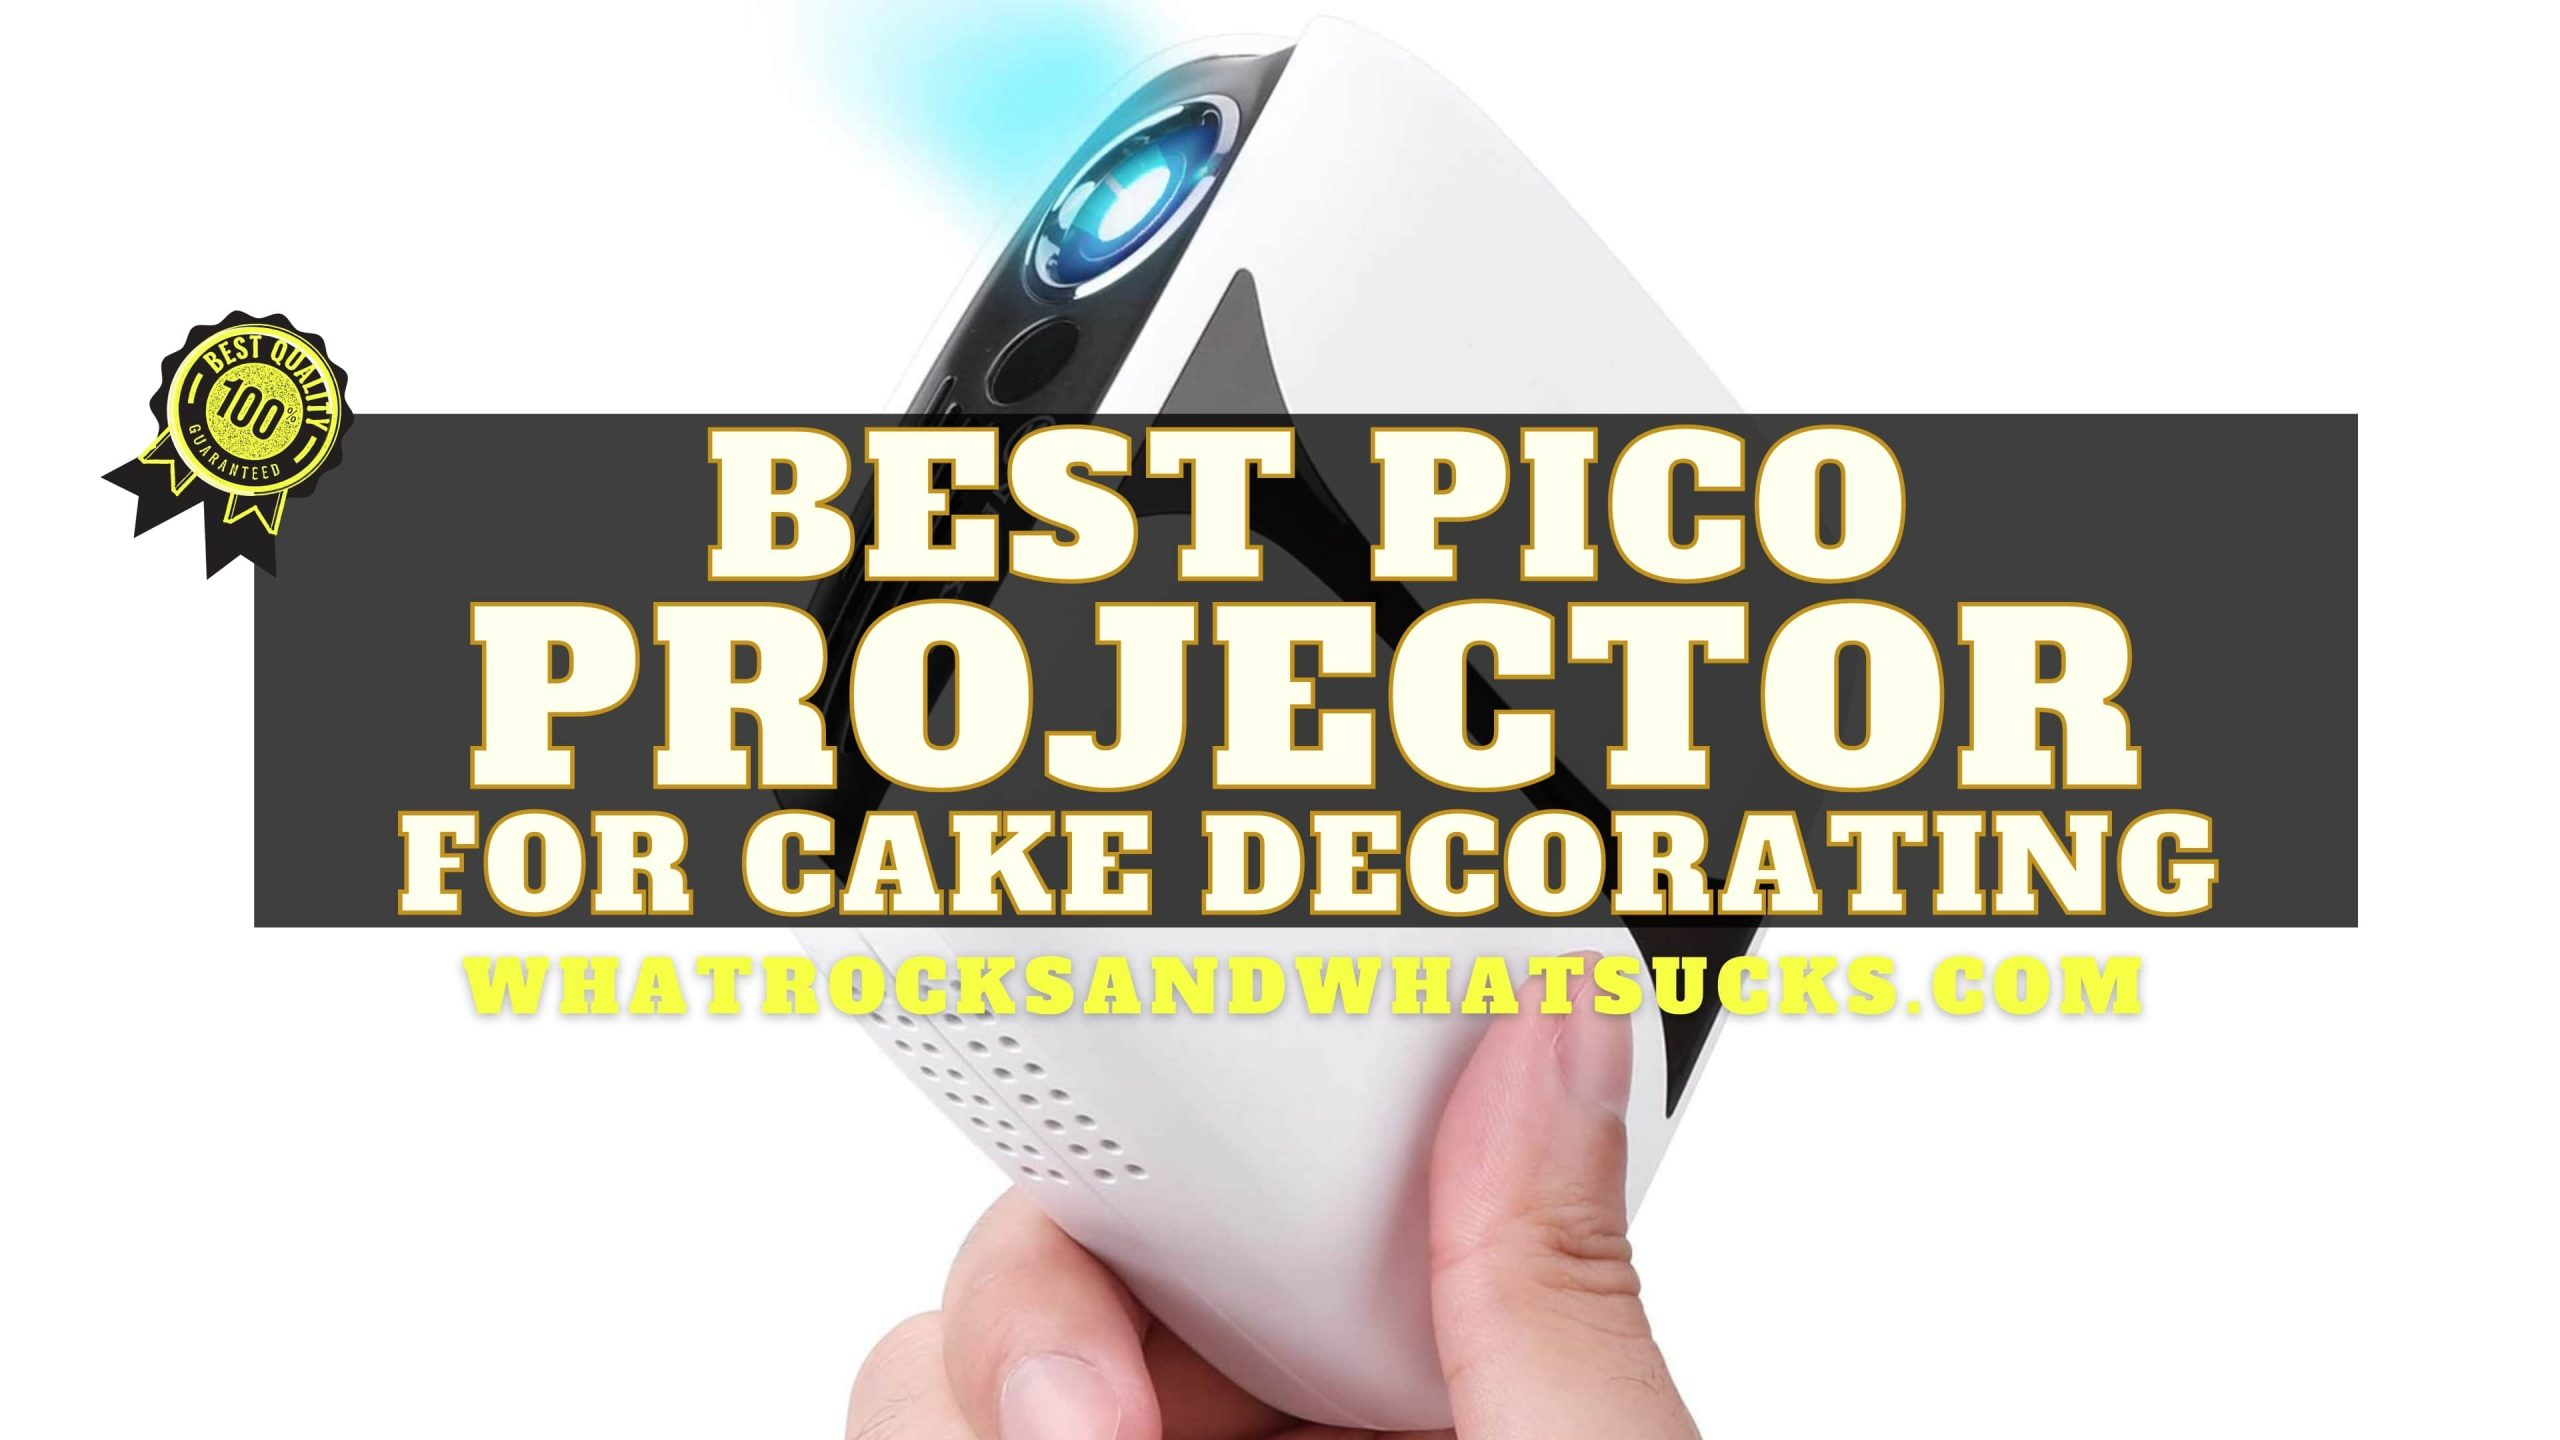 BEST PICO PROJECTOR FOR CAKE DECORATING